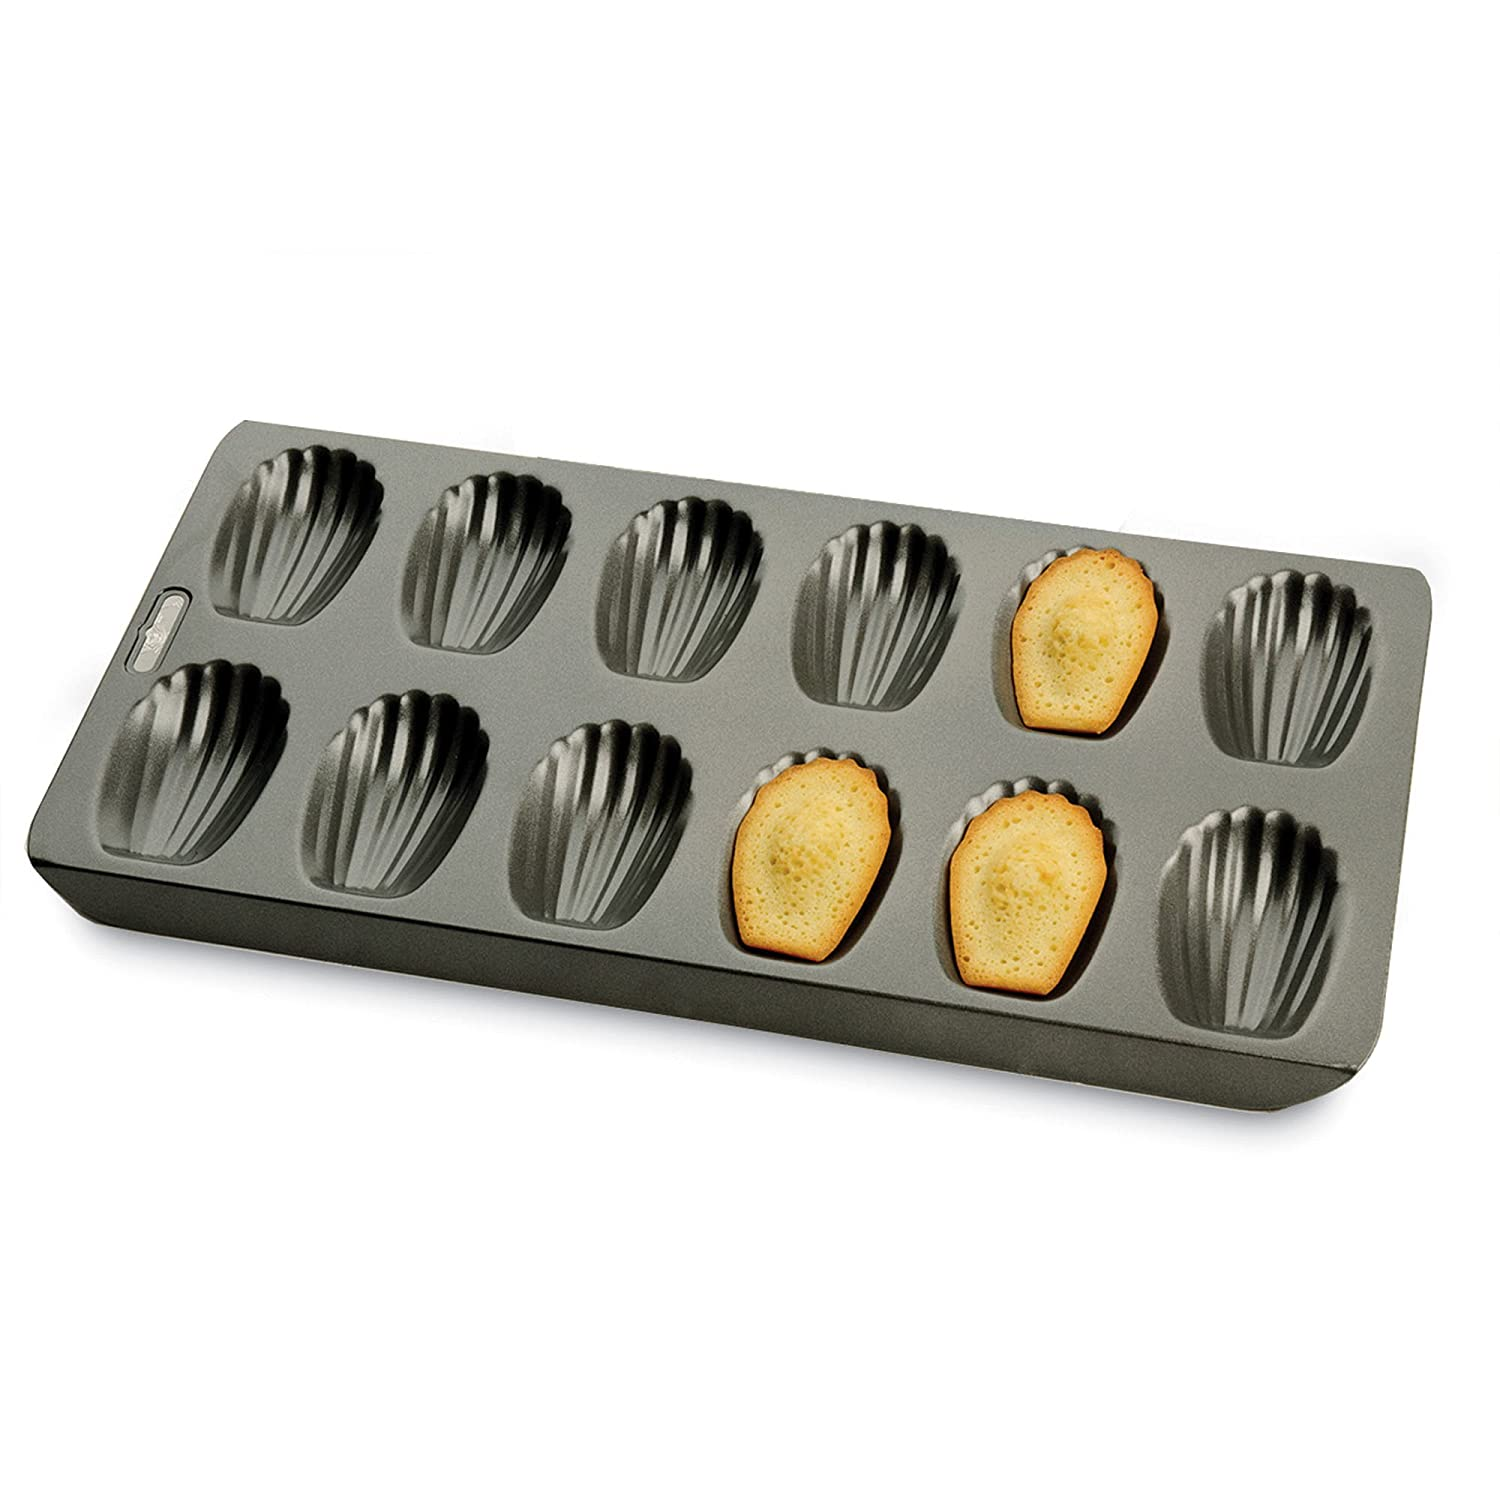 Chicago Metallic Professional Non-Stick 12-Hole Madeleine Tin, 40 x 19 cm (15.5